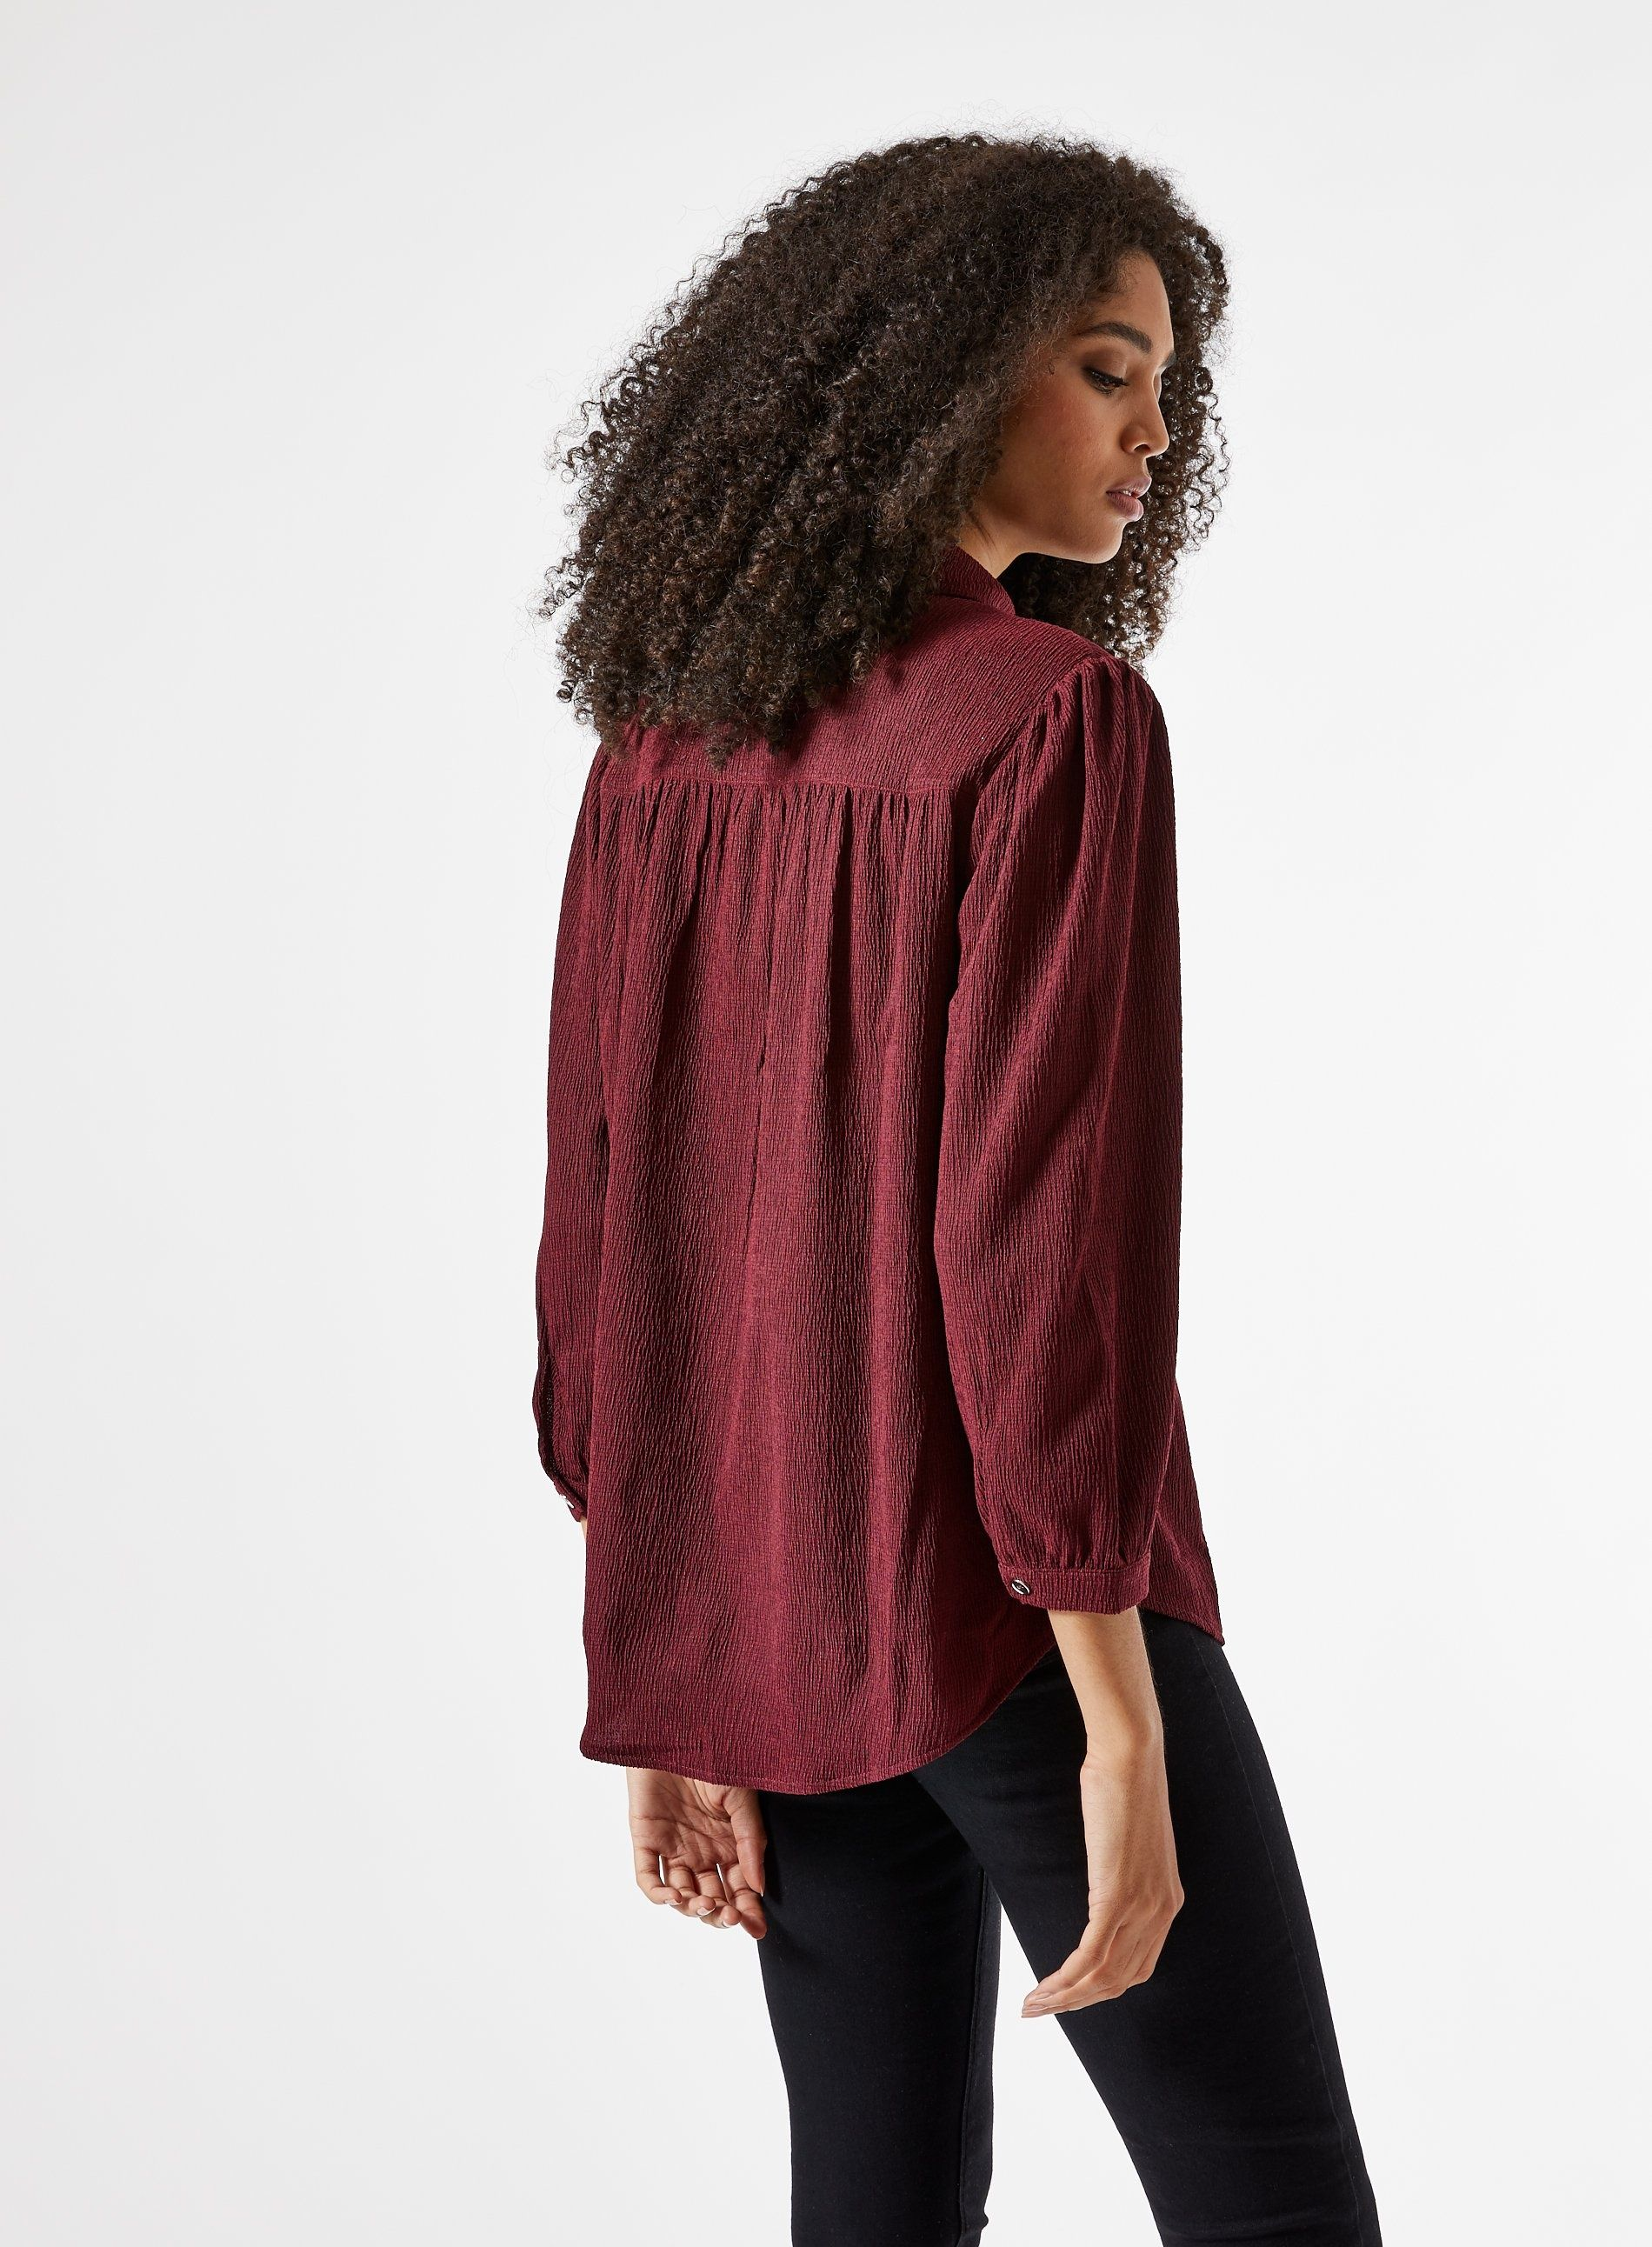 Dorothy Perkins Womens Red Textured Shirt 3/4 Sleeve Collared Blouse Top